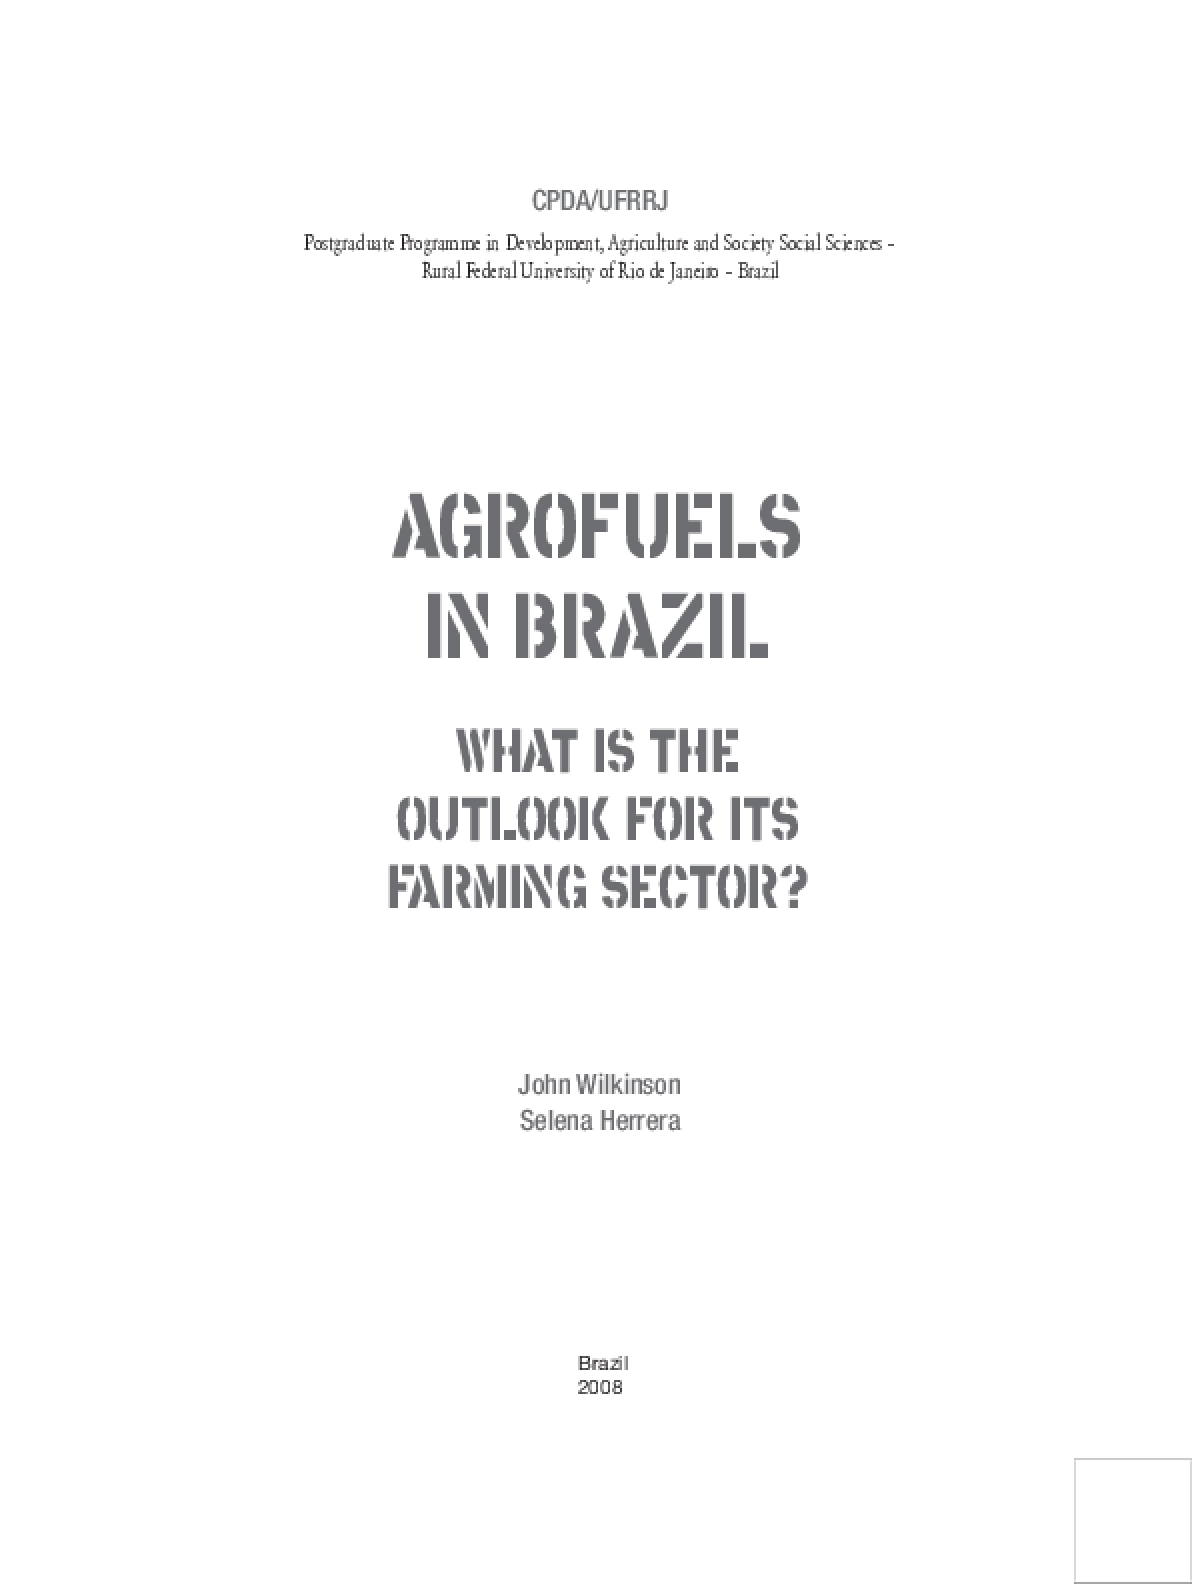 Agrofuels in Brazil: What is the outlook for its farming sector?